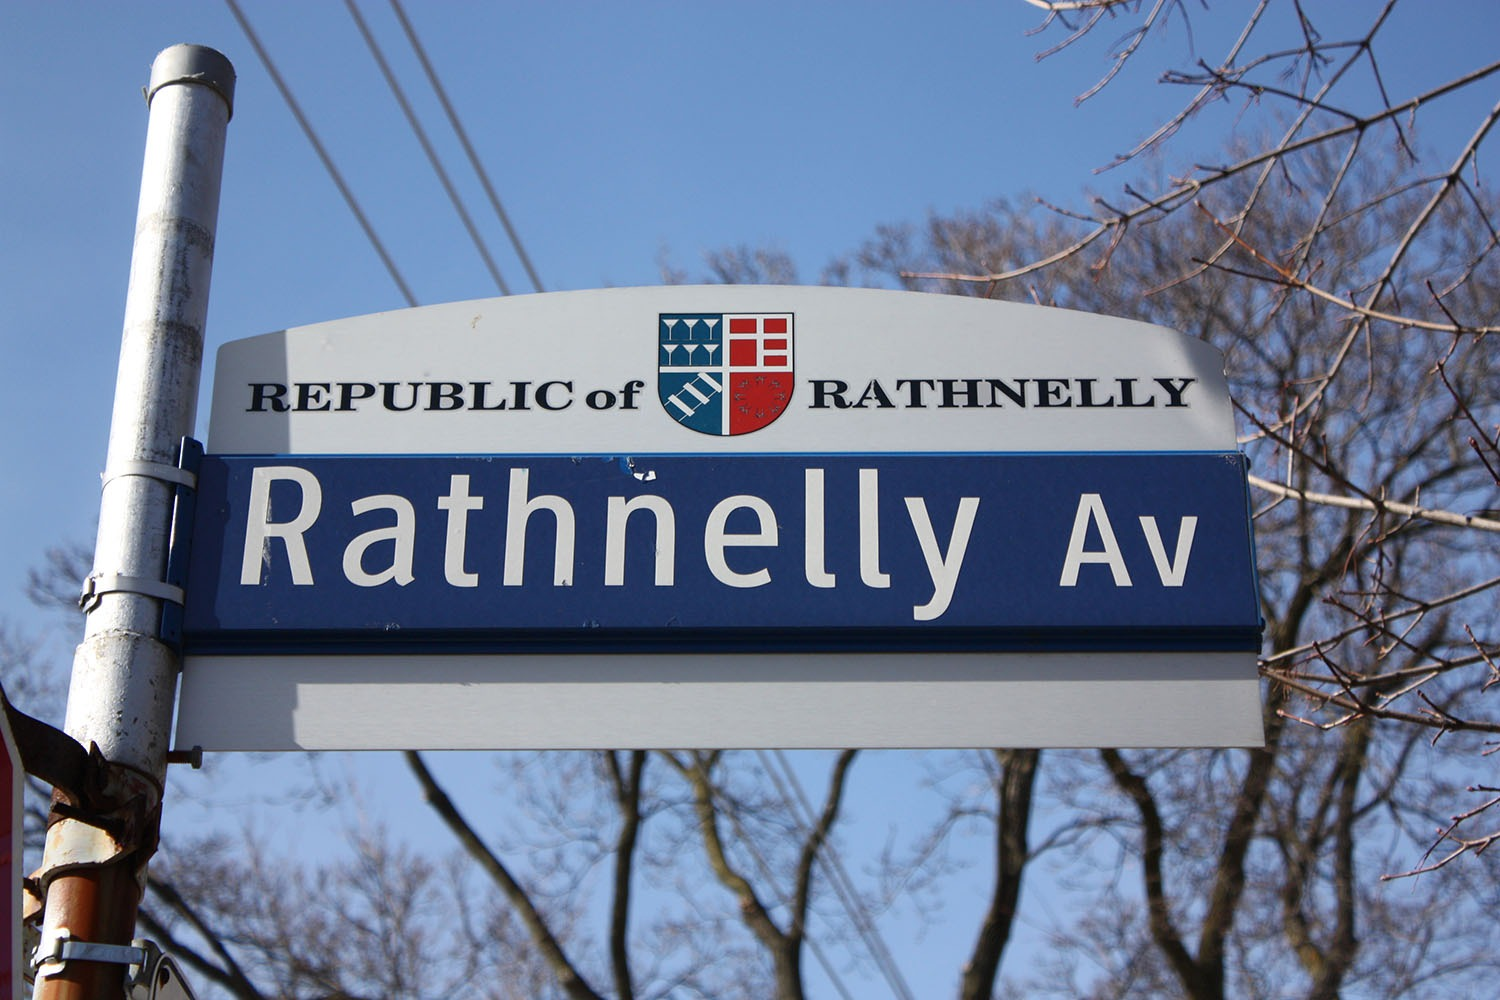 Rathnelly